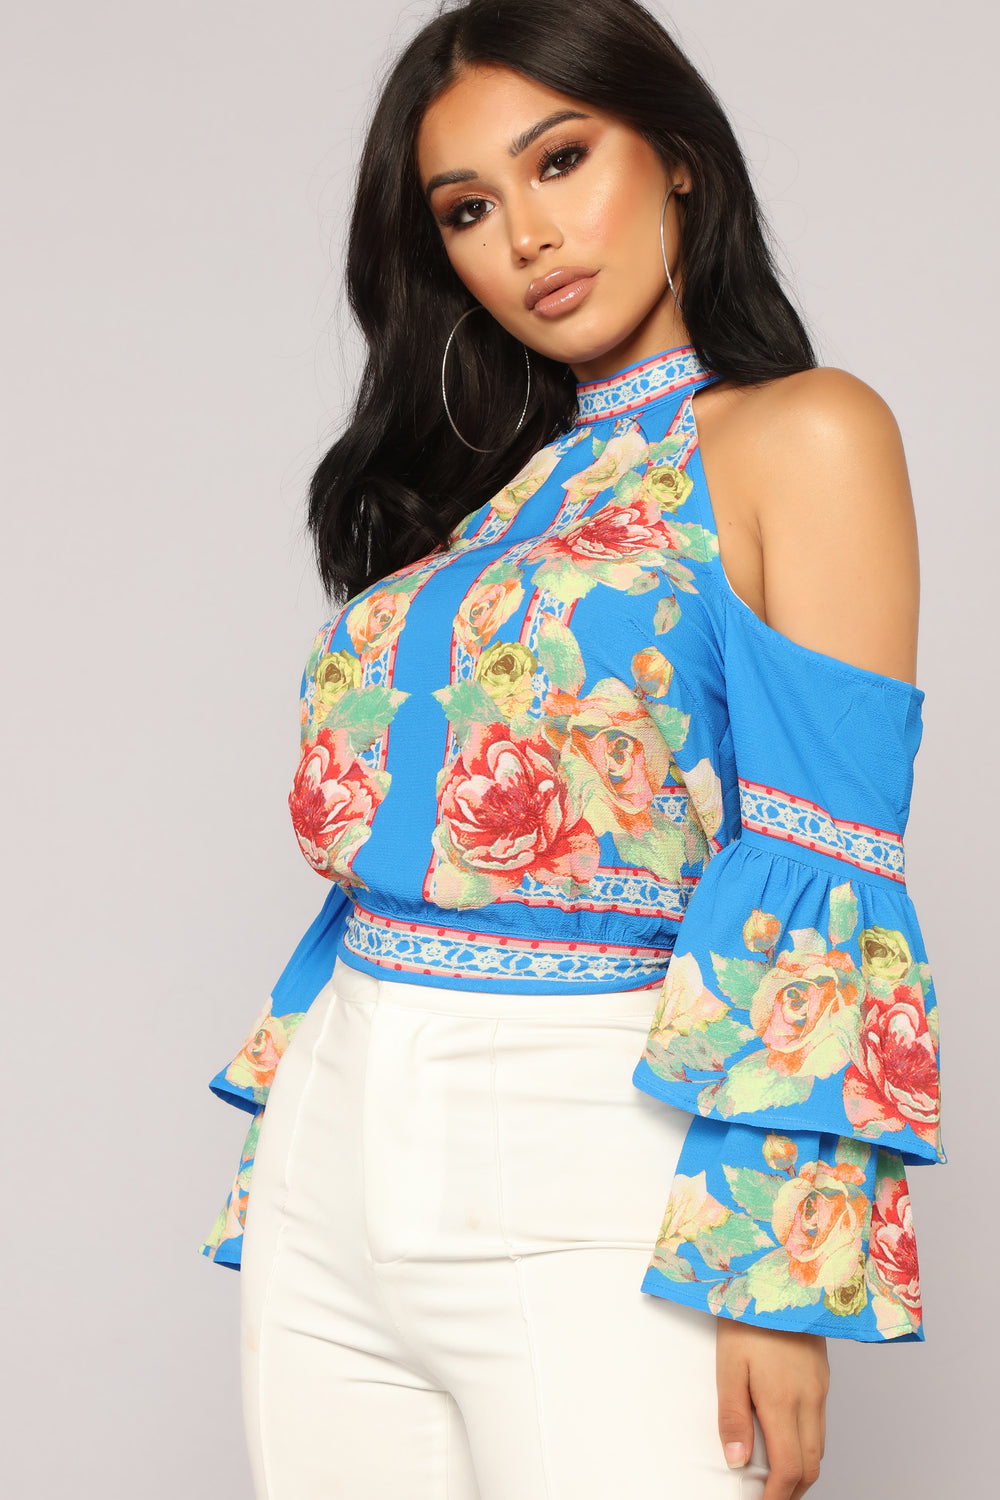 Taking My Sweet Time Floral Top - Blue/Combo